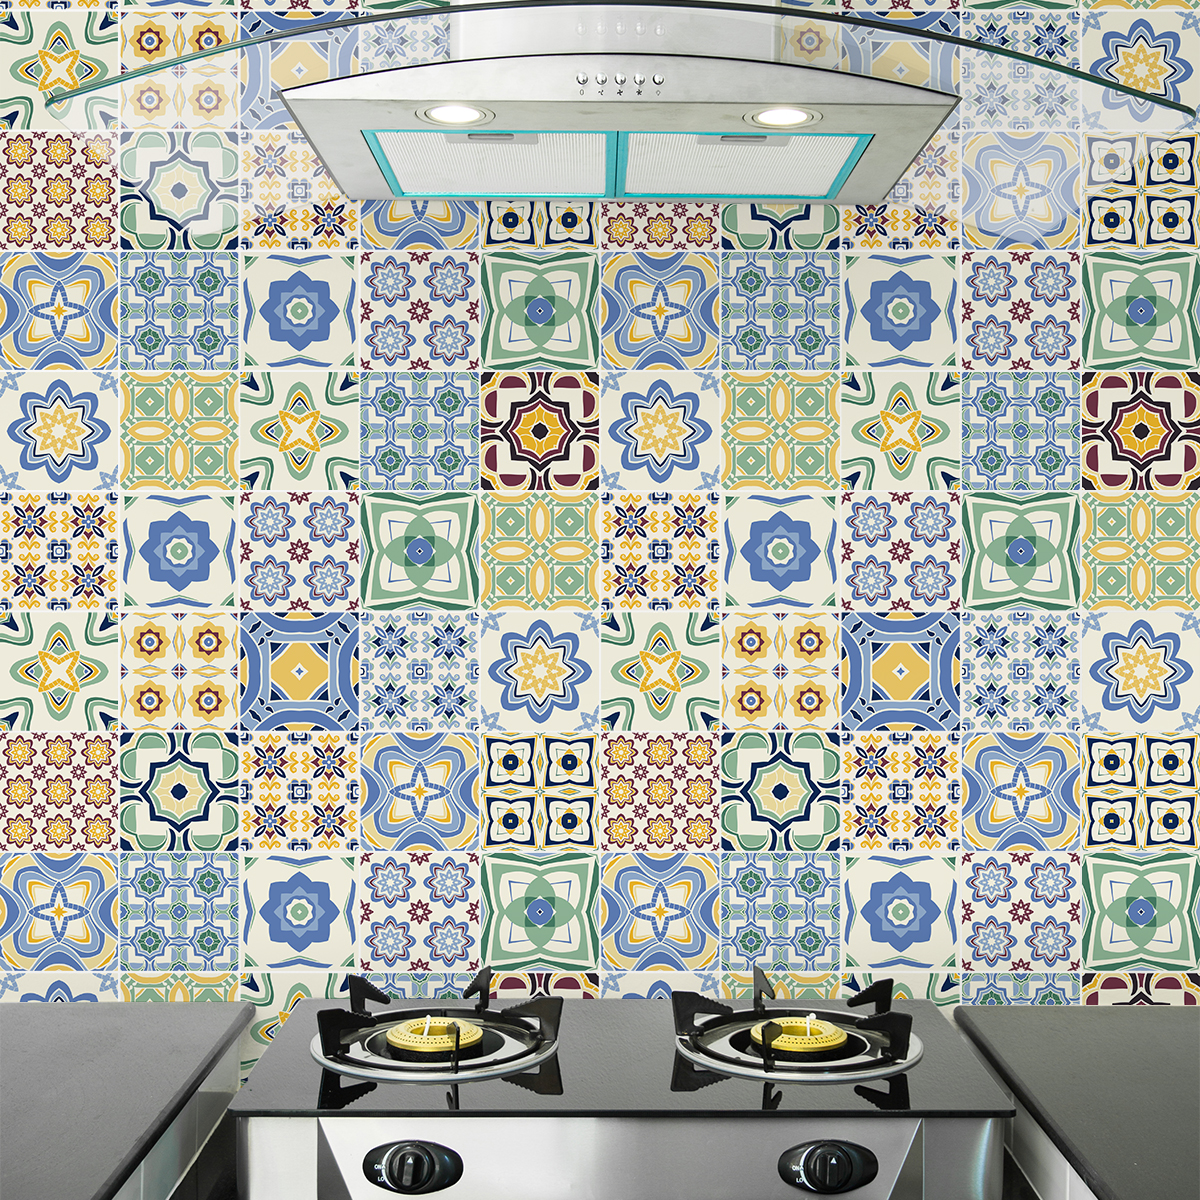 Stickers Carrelage Cuisine: 9 Stickers Carrelages Azulejos Serena